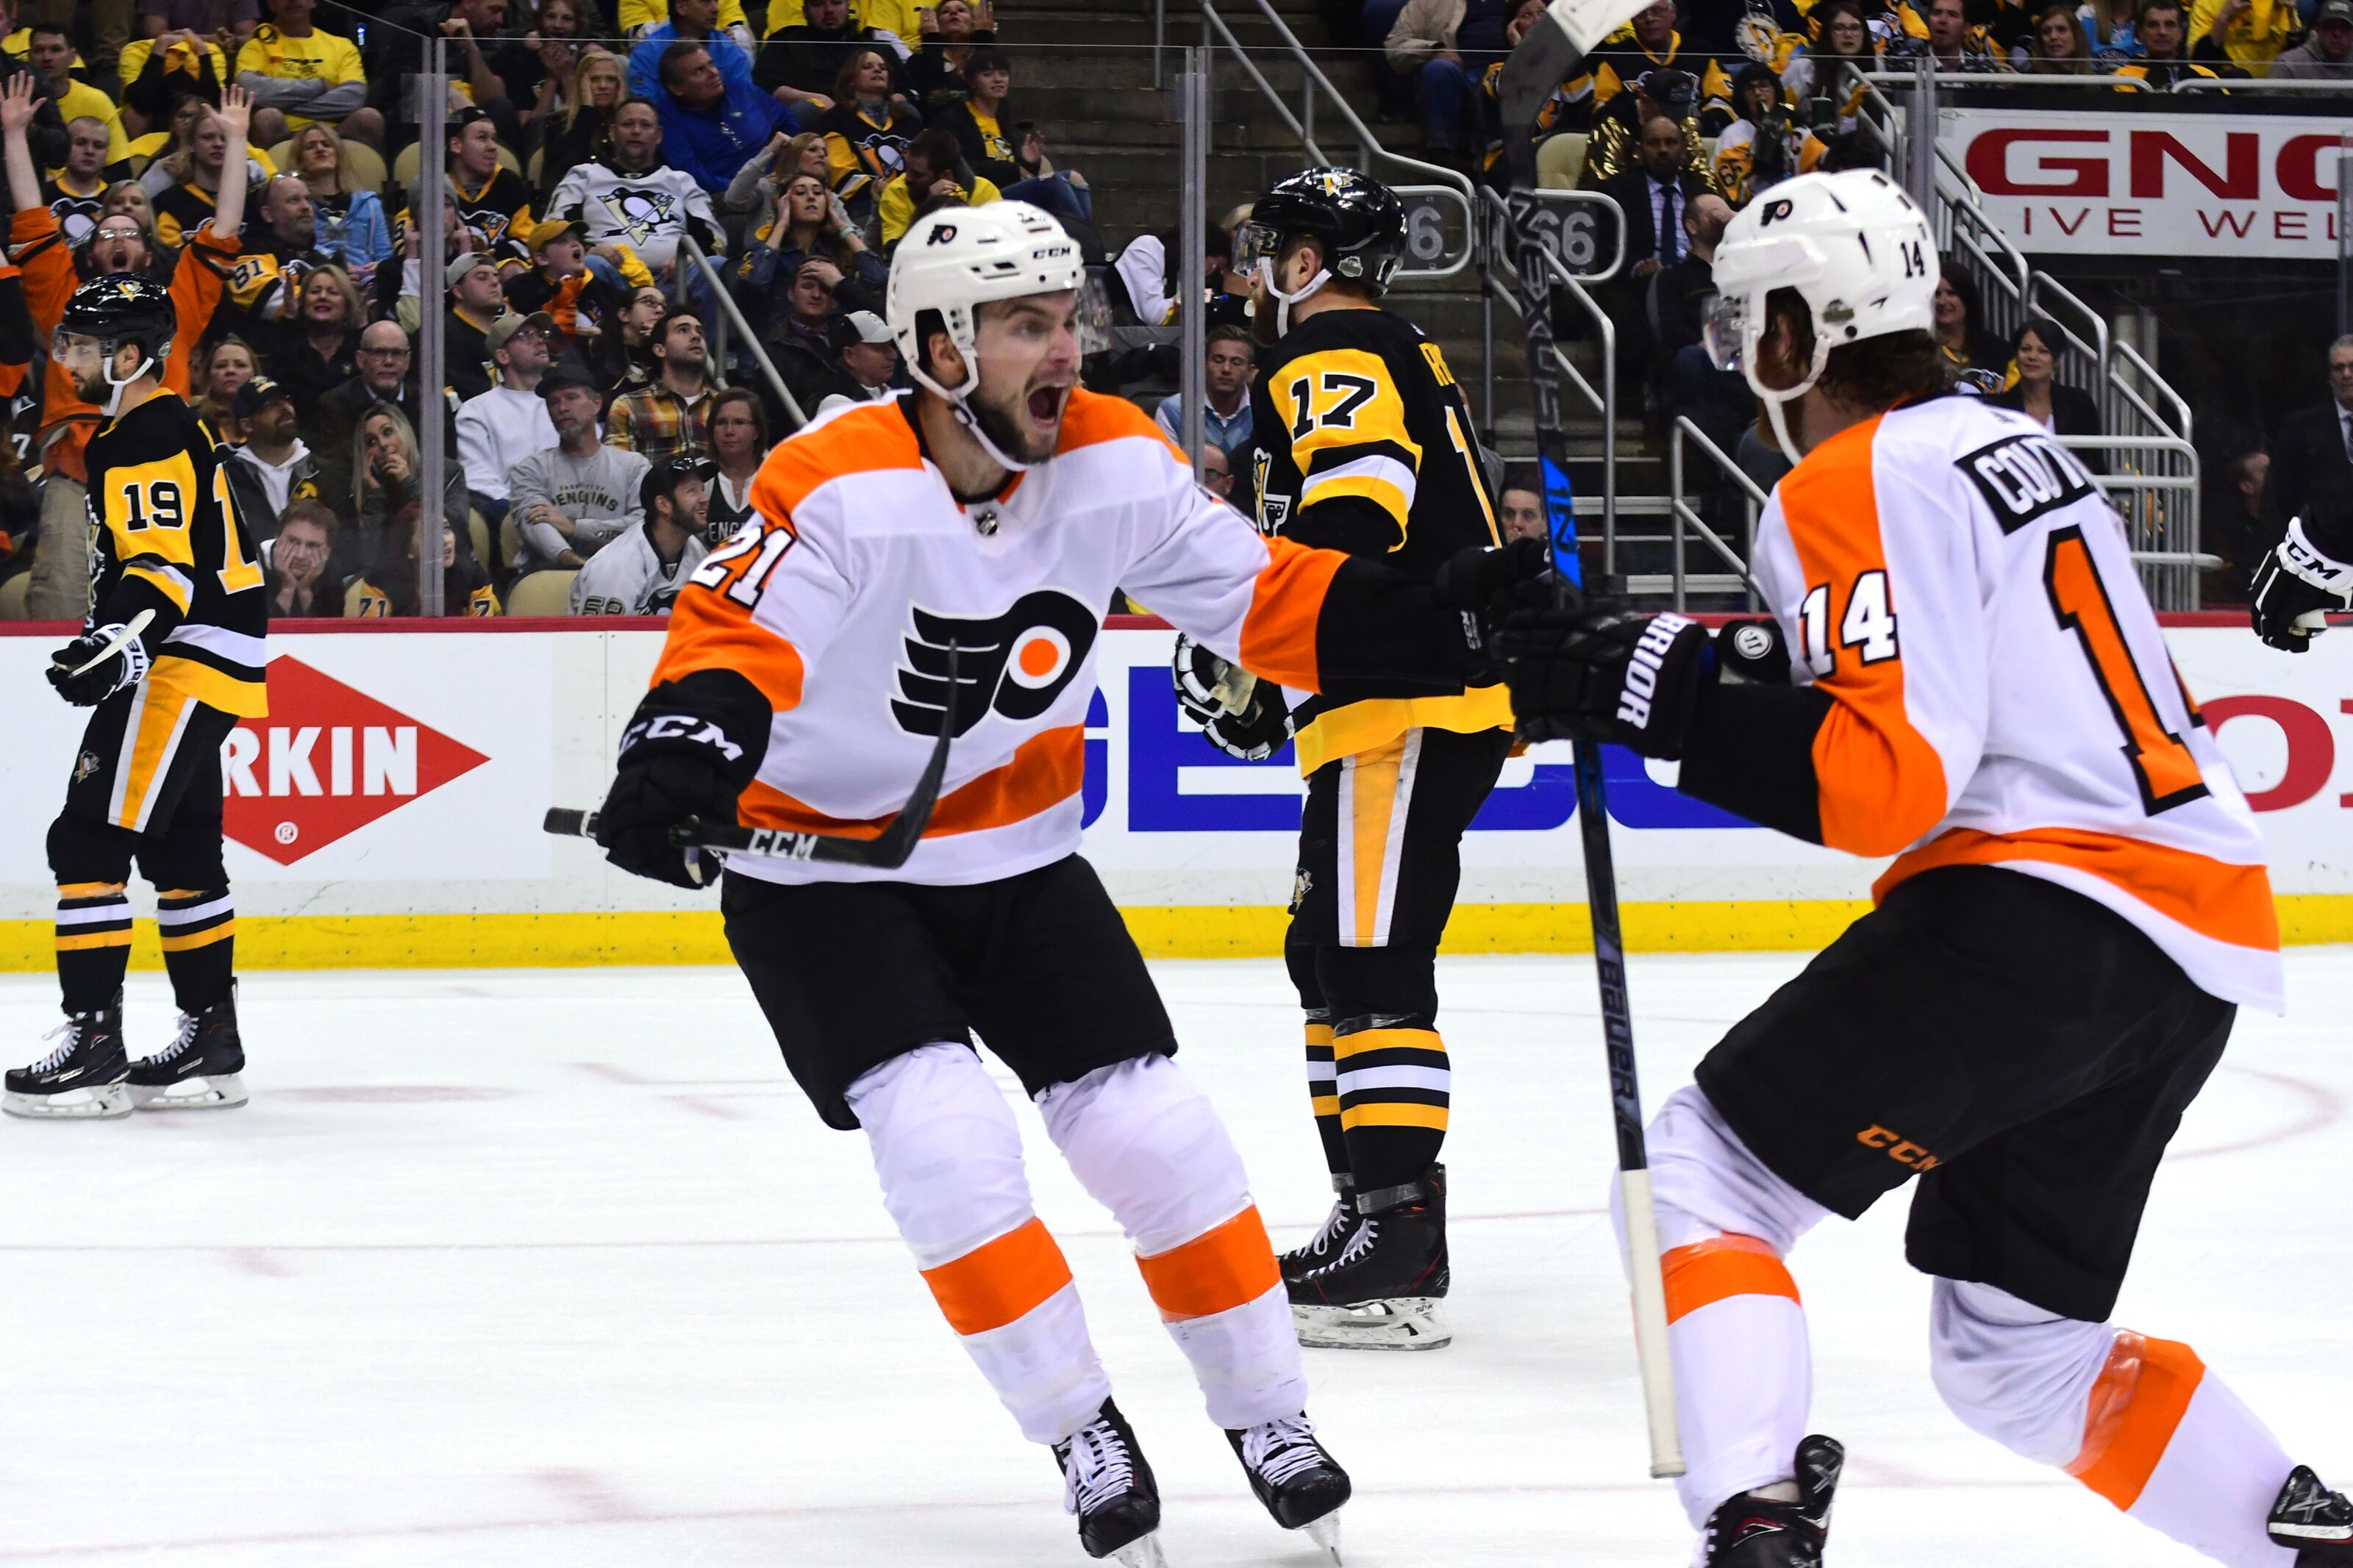 949719698-philadelphia-flyers-v-pittsburgh-penguins-game-five.jpg